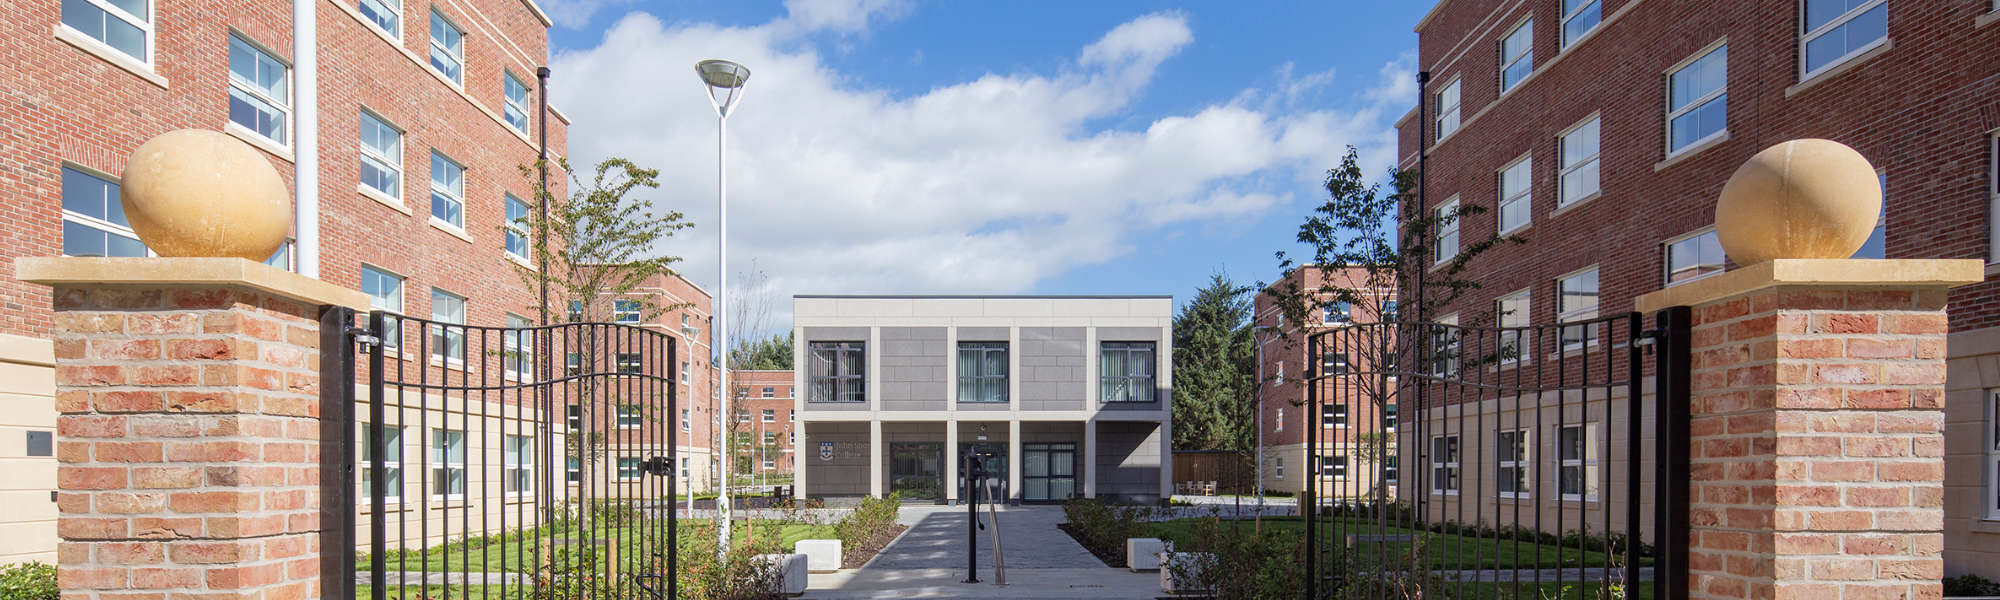 Student accommodation constructed using PCE's 'kit of parts' approach